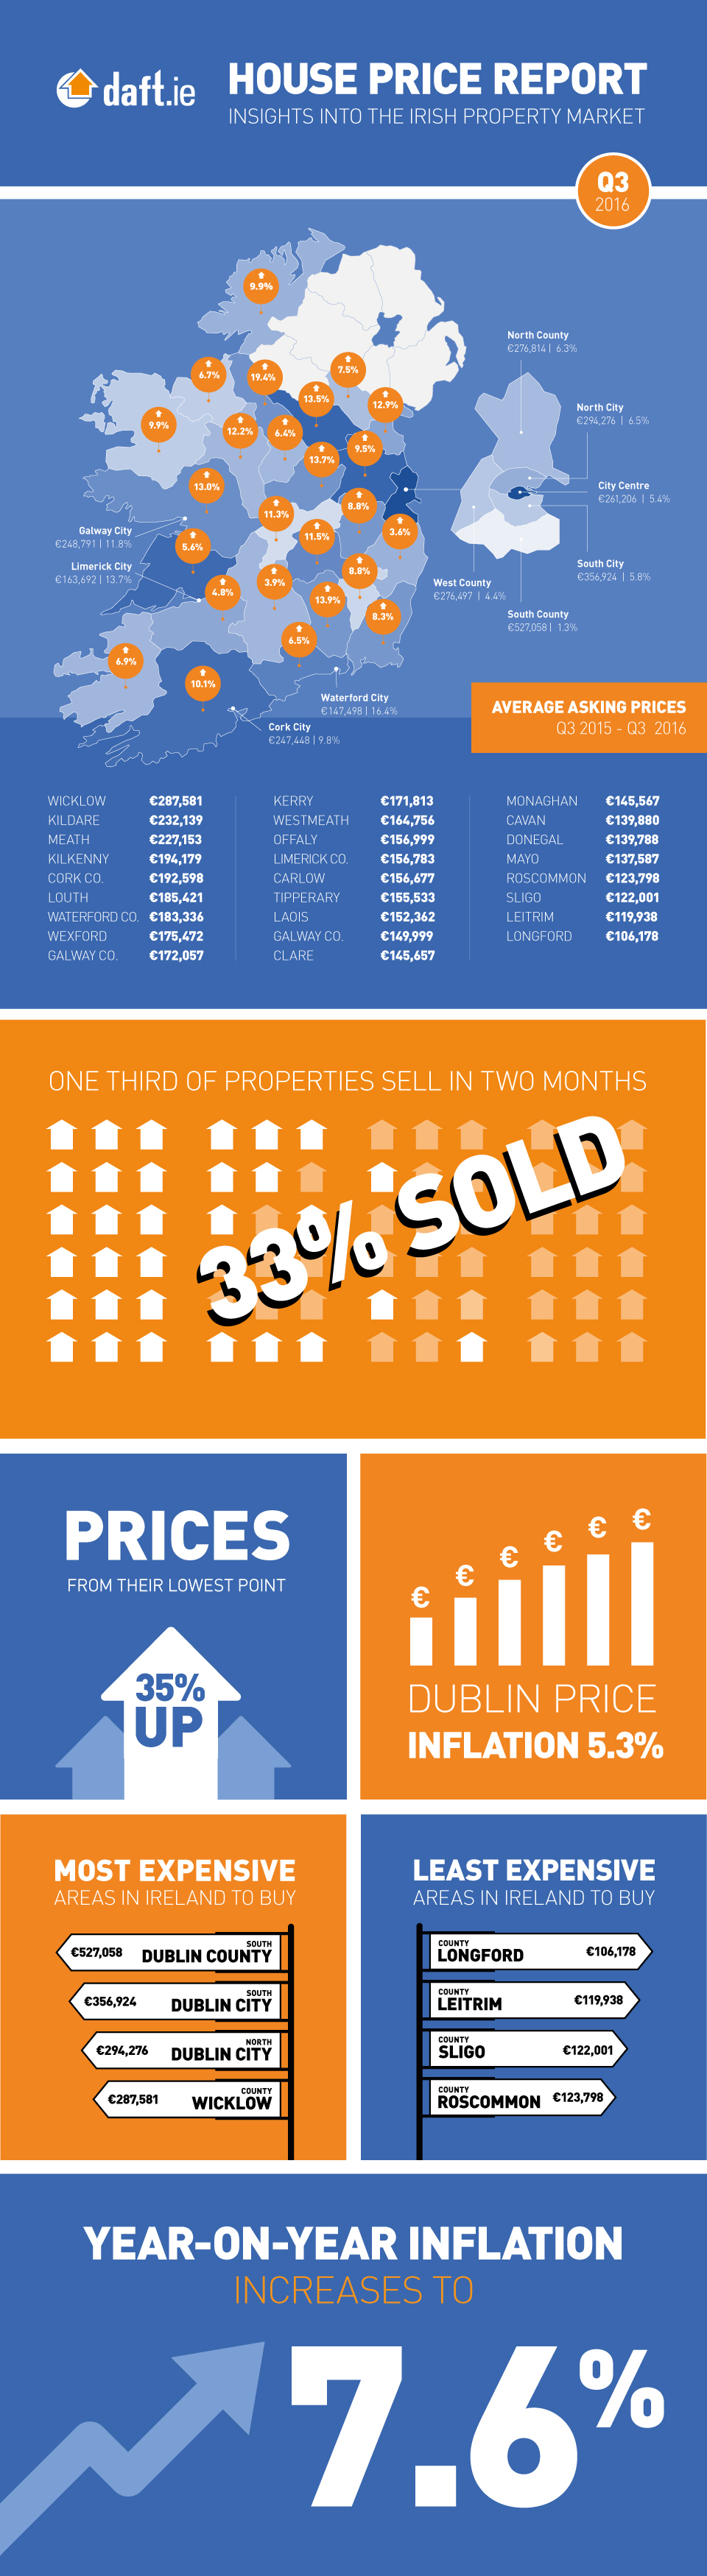 2016-q3-house-price-infographic-daft.jpg